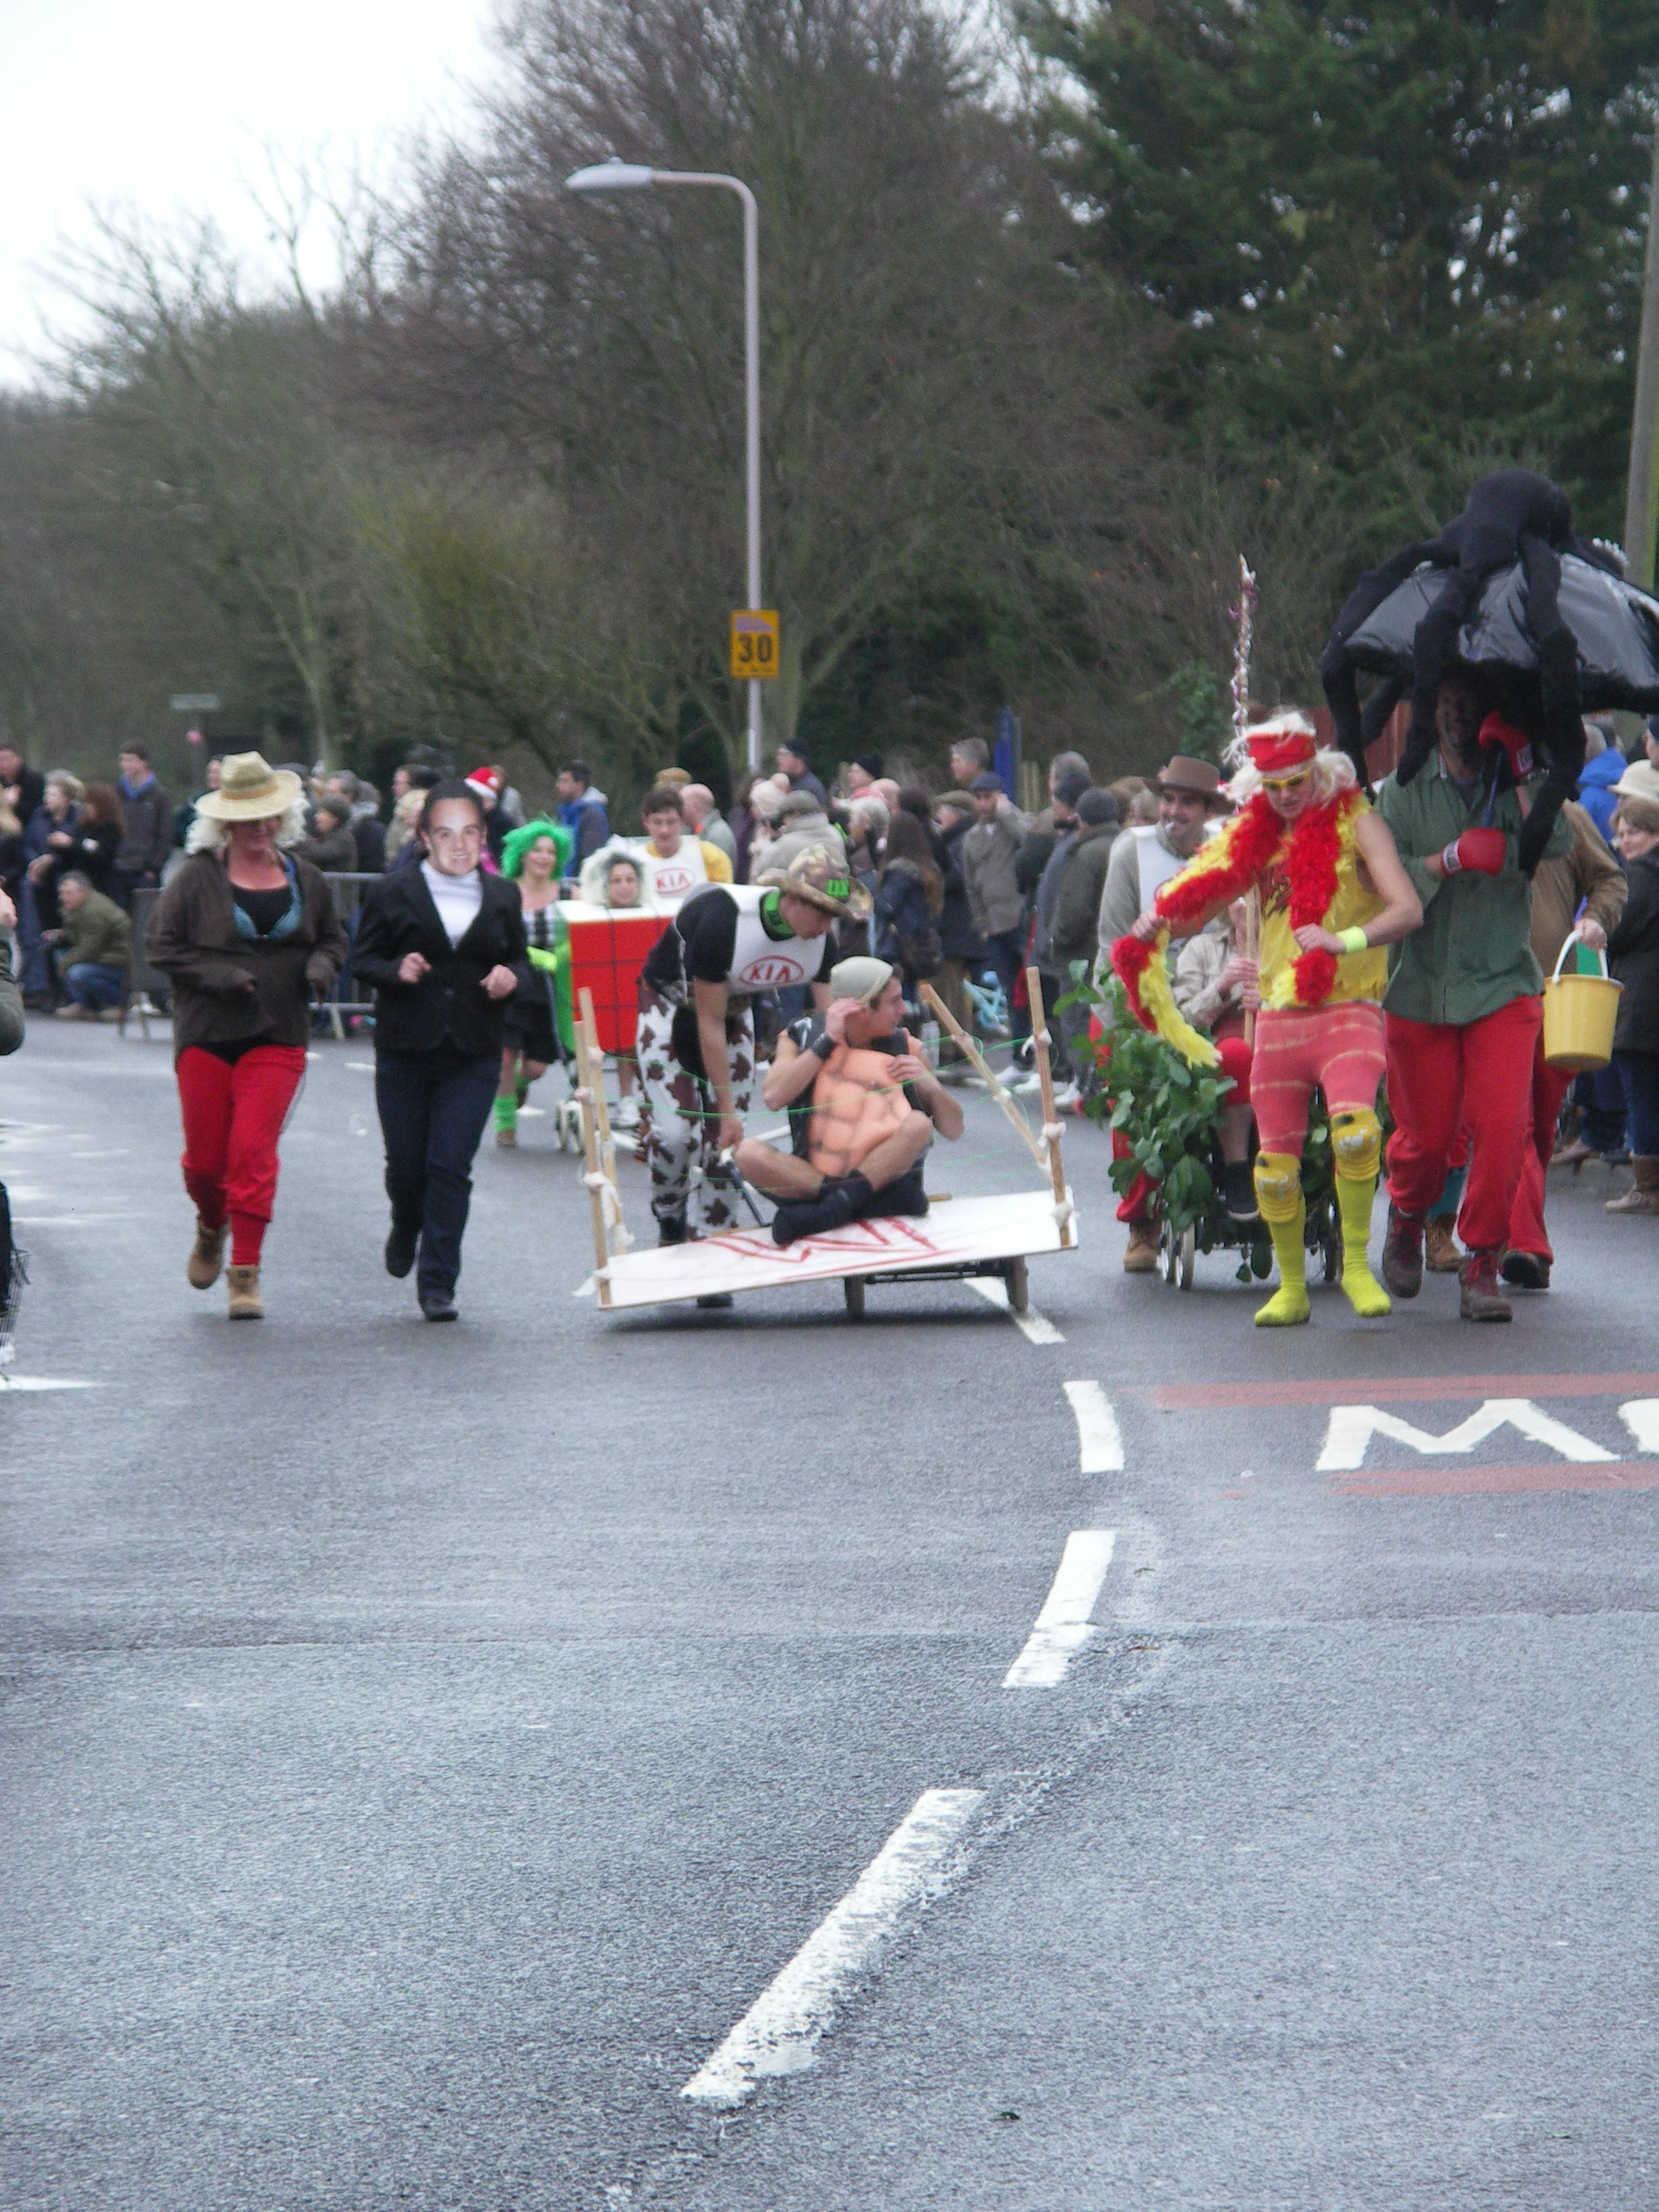 http://www.paghampramrace.com/wp-content/uploads/2018/04/PICT0079.jpg